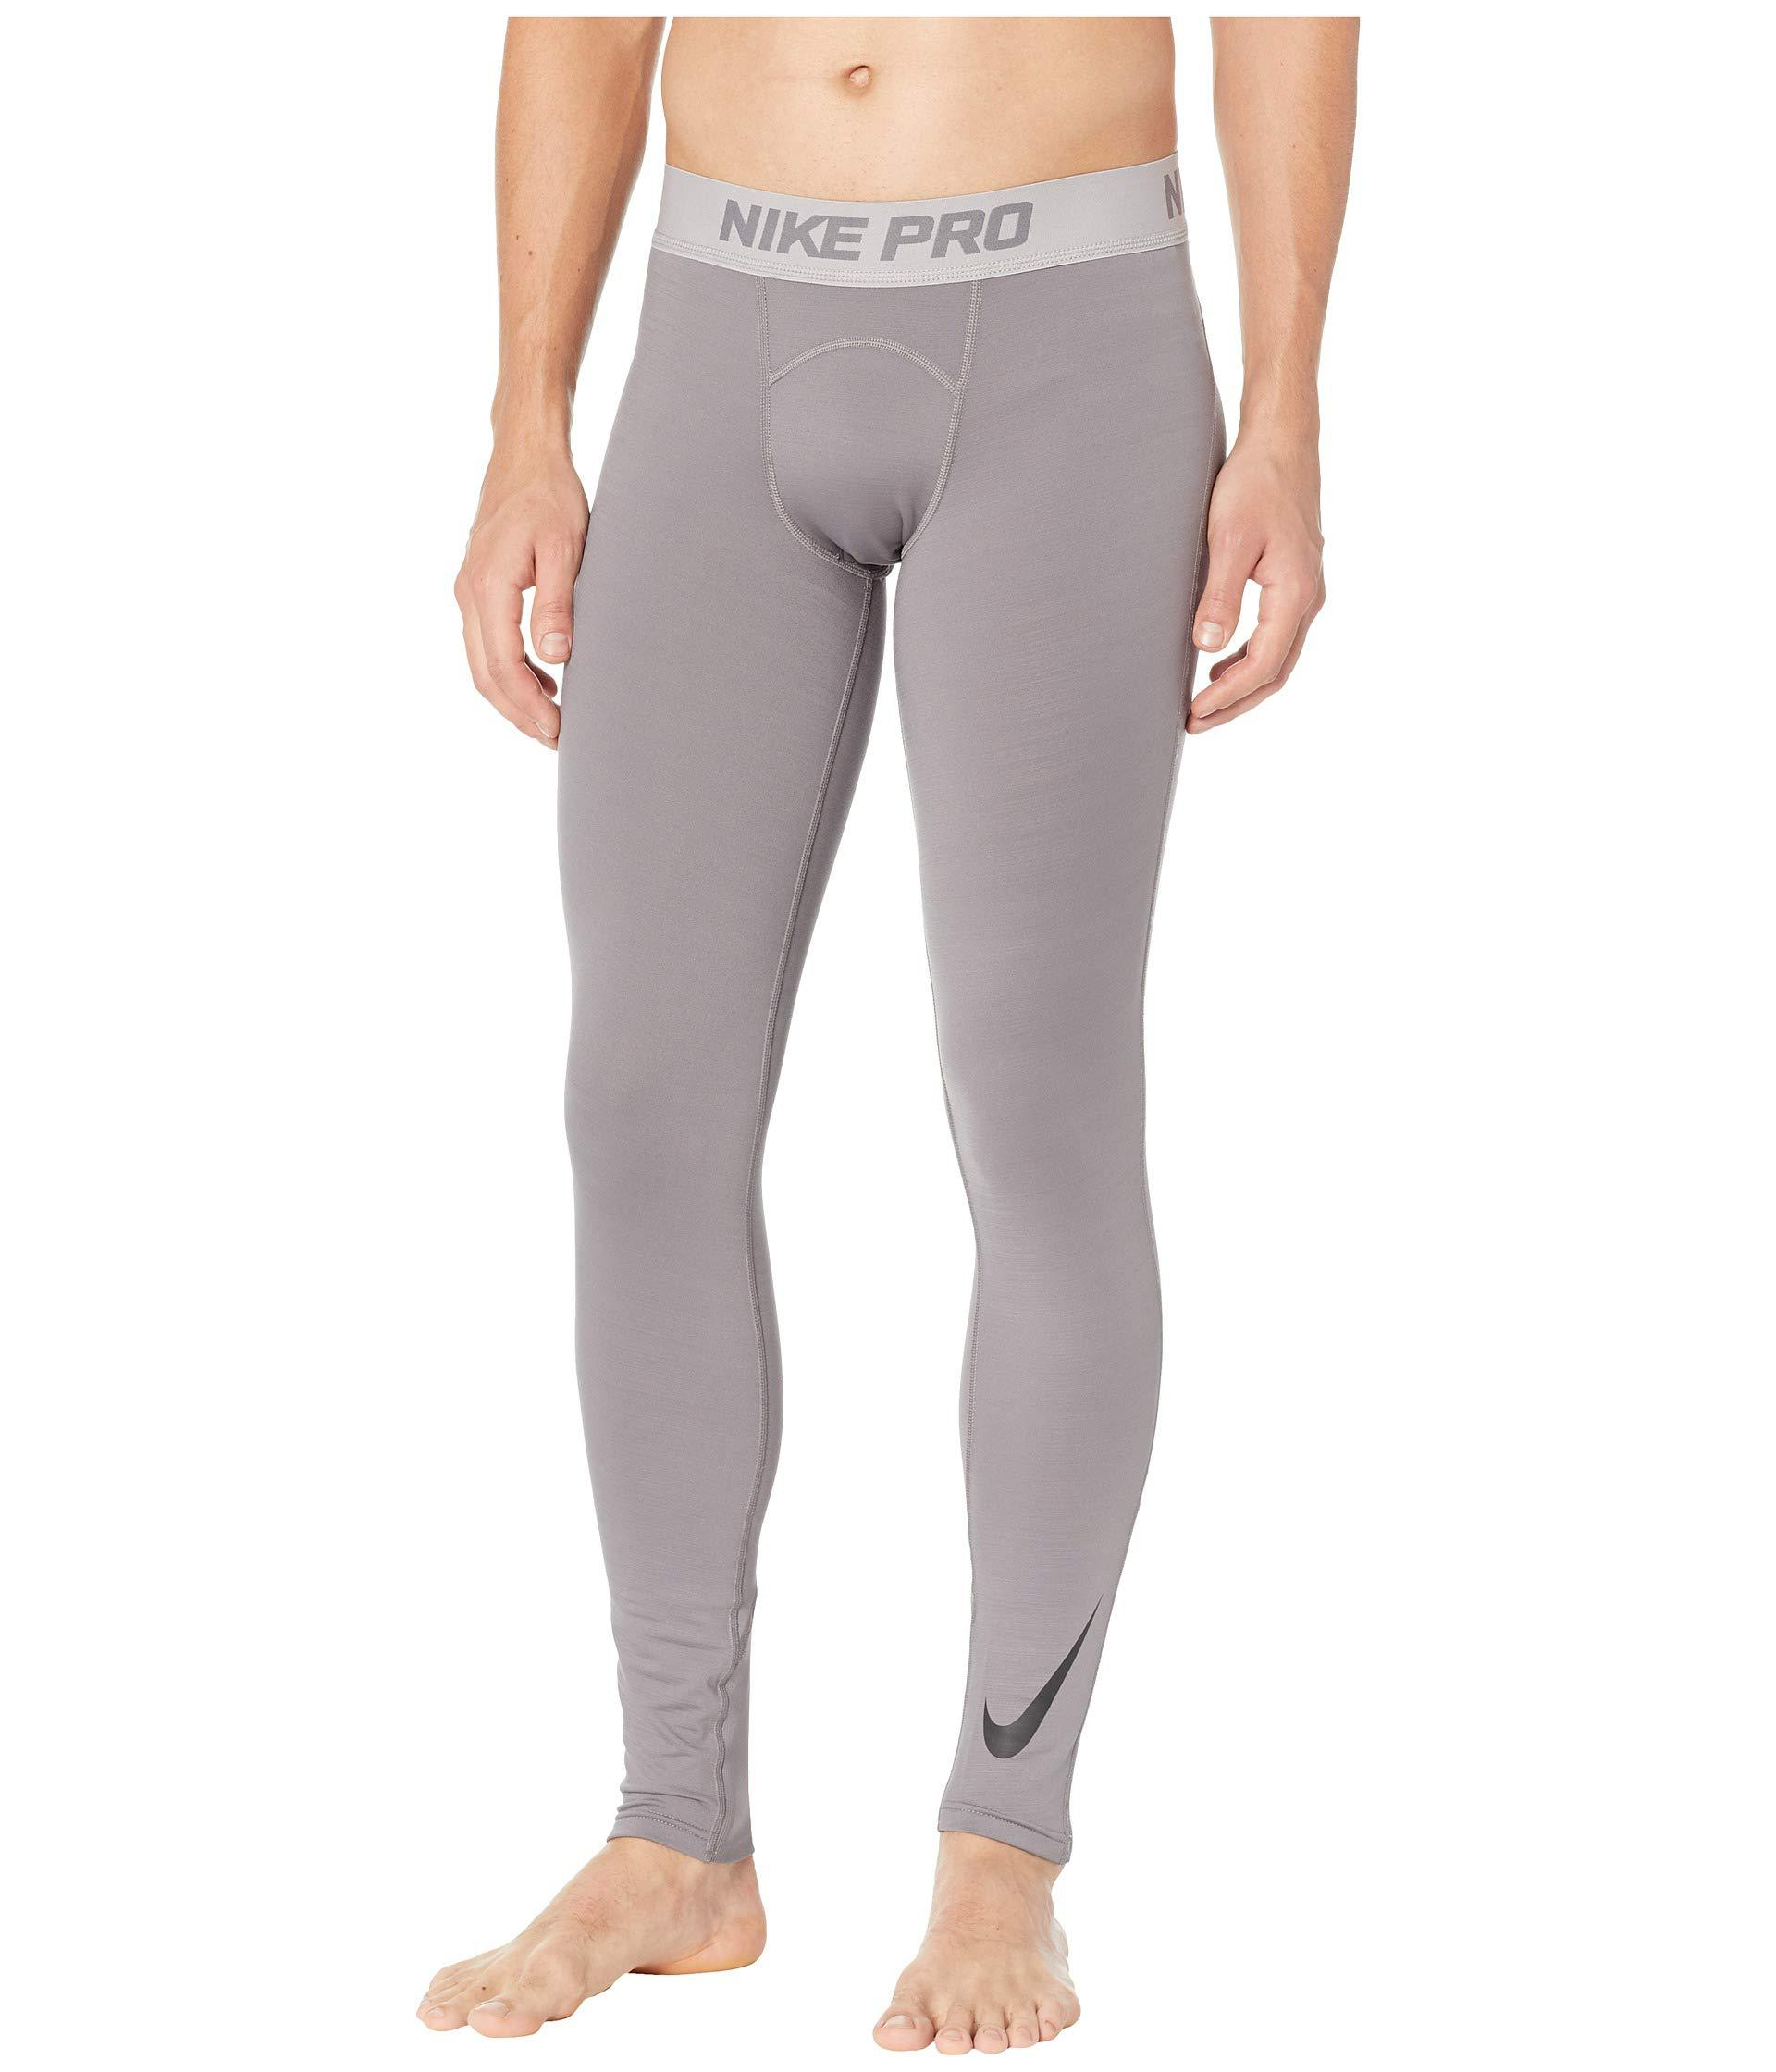 ac5690157cab1 Lyst - Nike Pro Thermal Tights in Gray for Men